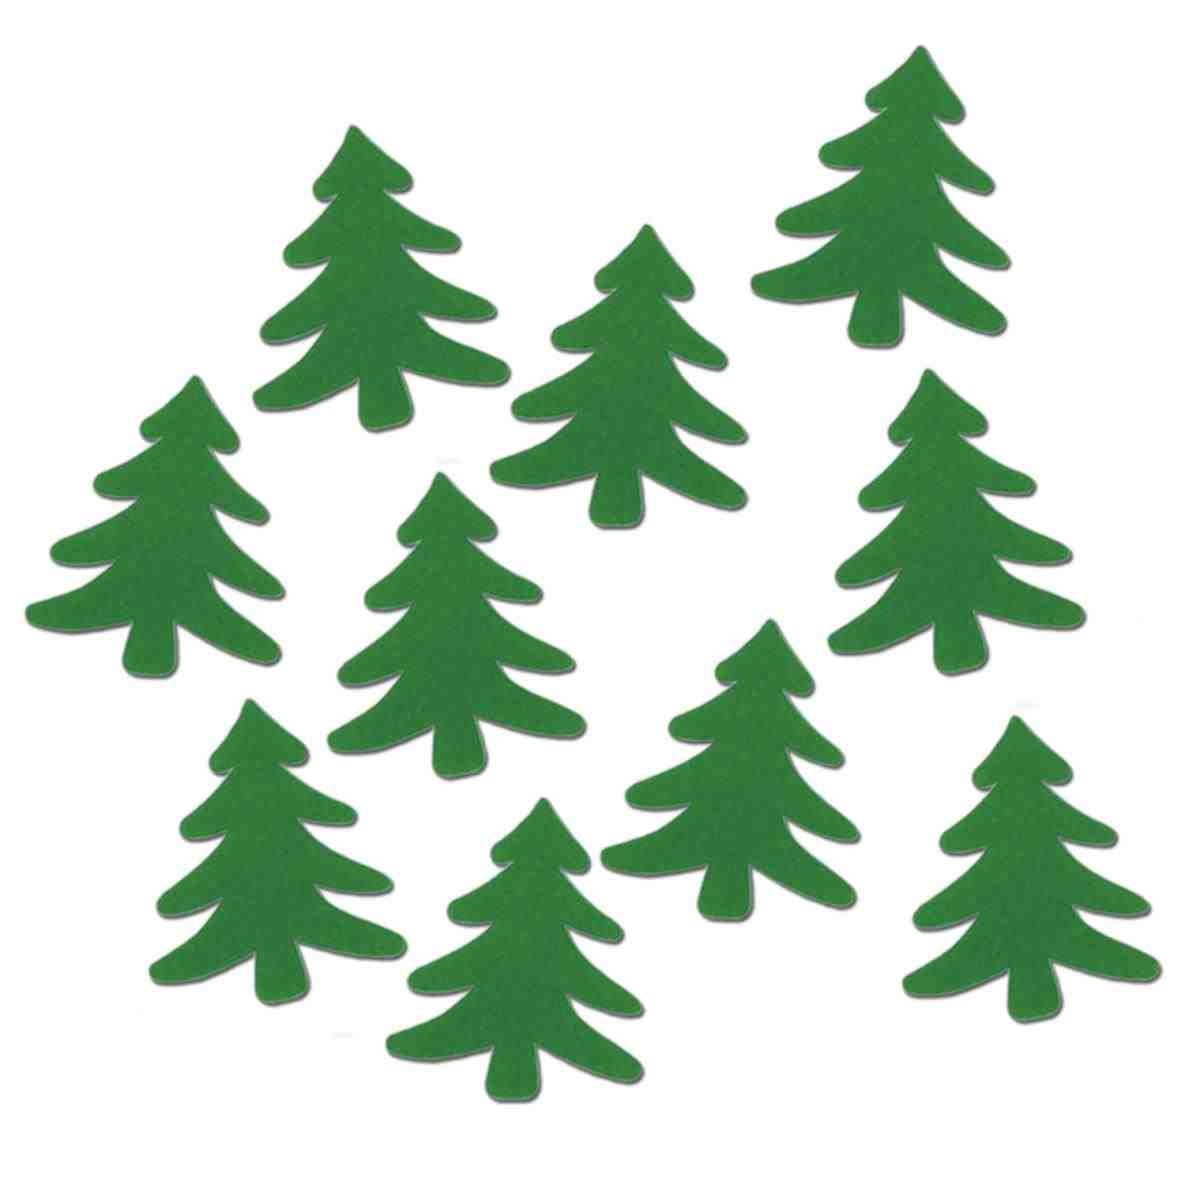 1185x1185 Try Rustic Rustic Green Christmas Tree Outline Clipart